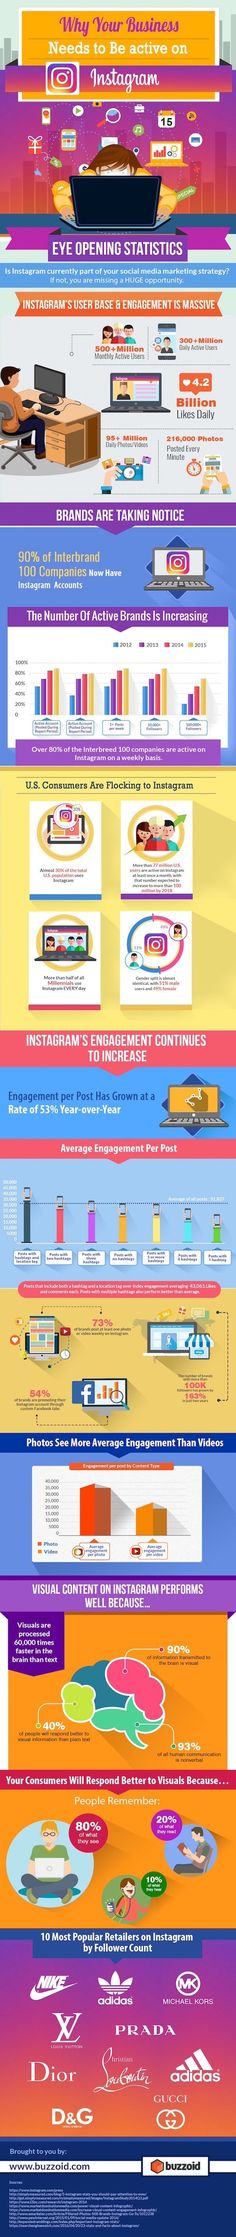 Instagram is potentially a gold mine for your business.